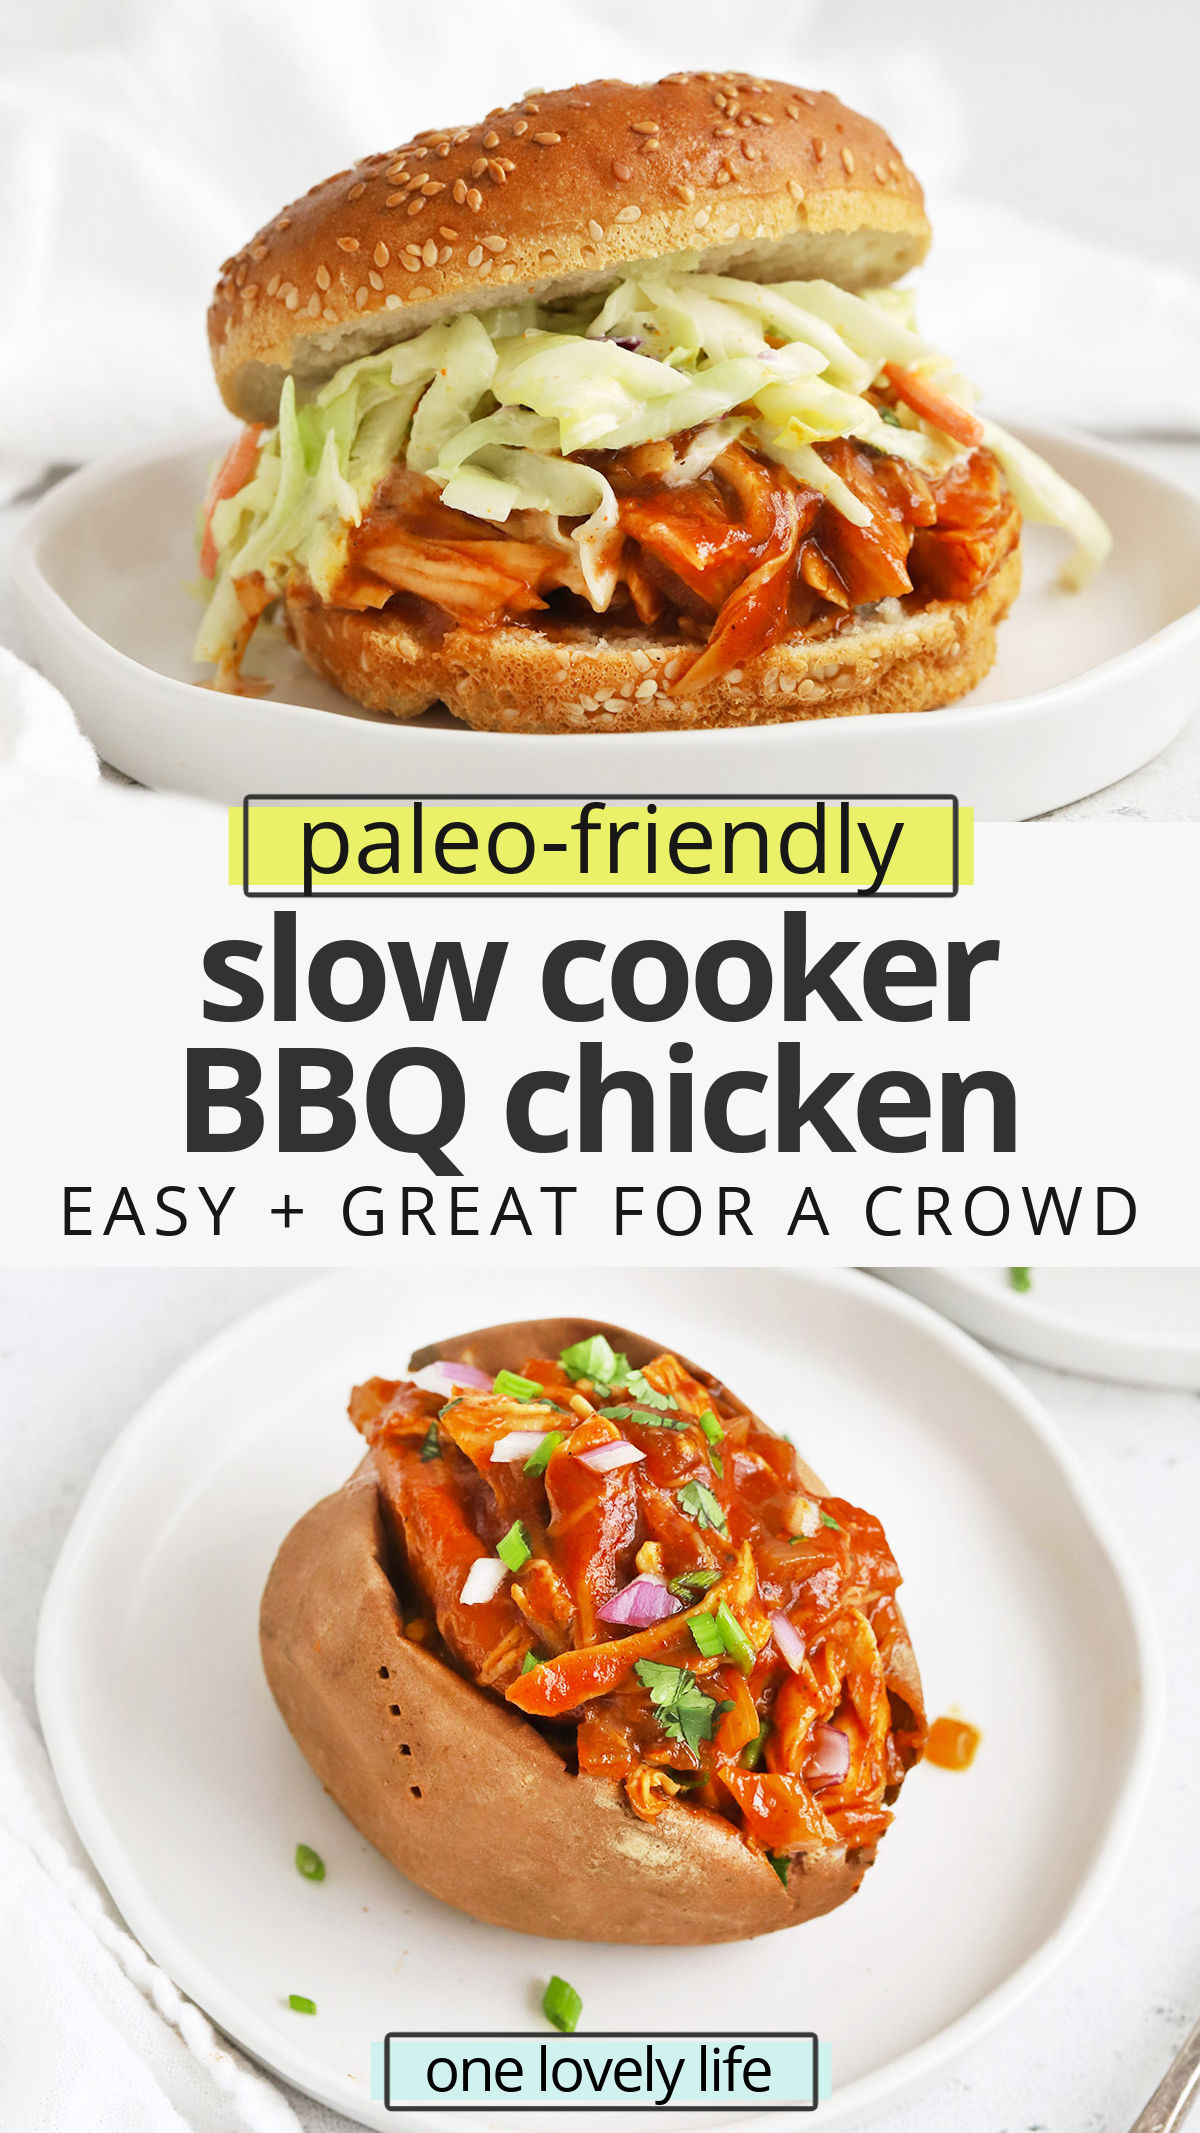 Slow Cooker BBQ Chicken - This tender crockpot barbecue chicken makes for delicious sandwiches, salads, pizzas & more! (Paleo-Friendly) // Crock Pot BBQ Chicken // Slow Cooker Barbecue Chicken Recipe // Slow Cooker Chicken // Summer recipe // Dinner for a crowd #bbq #chicken #slowcooker #easydinner